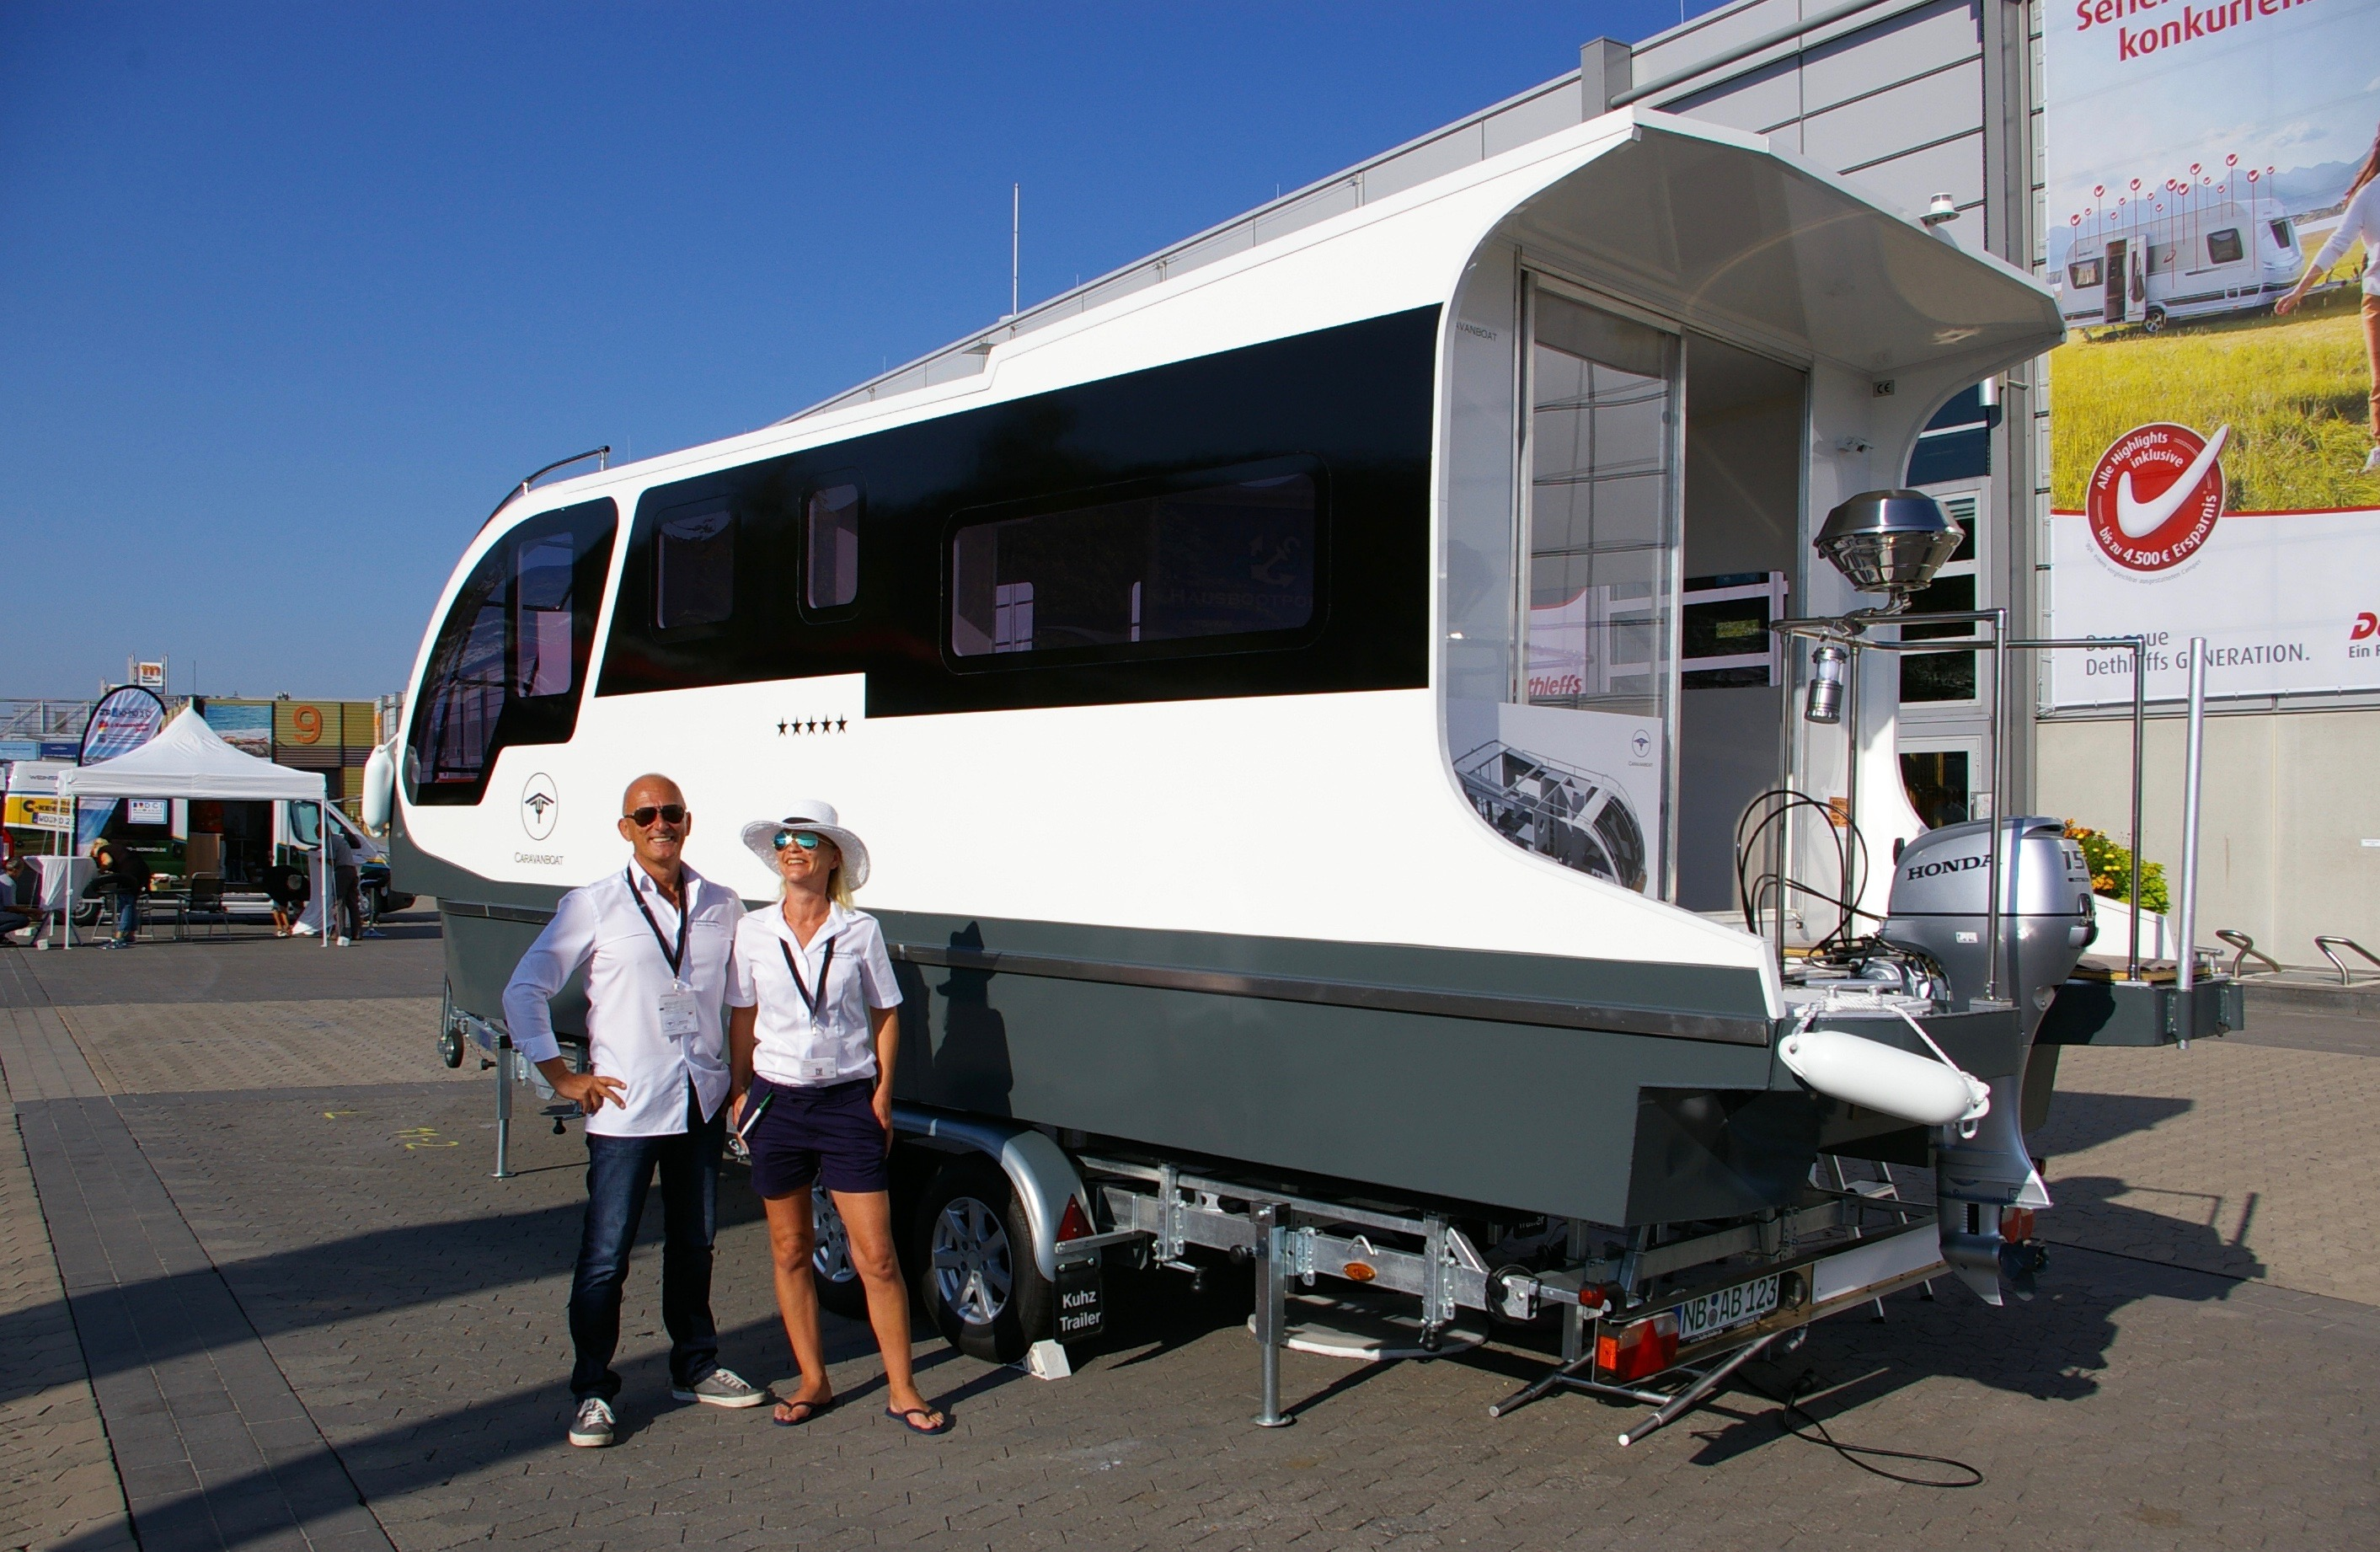 5 campers pushing RV design into the future